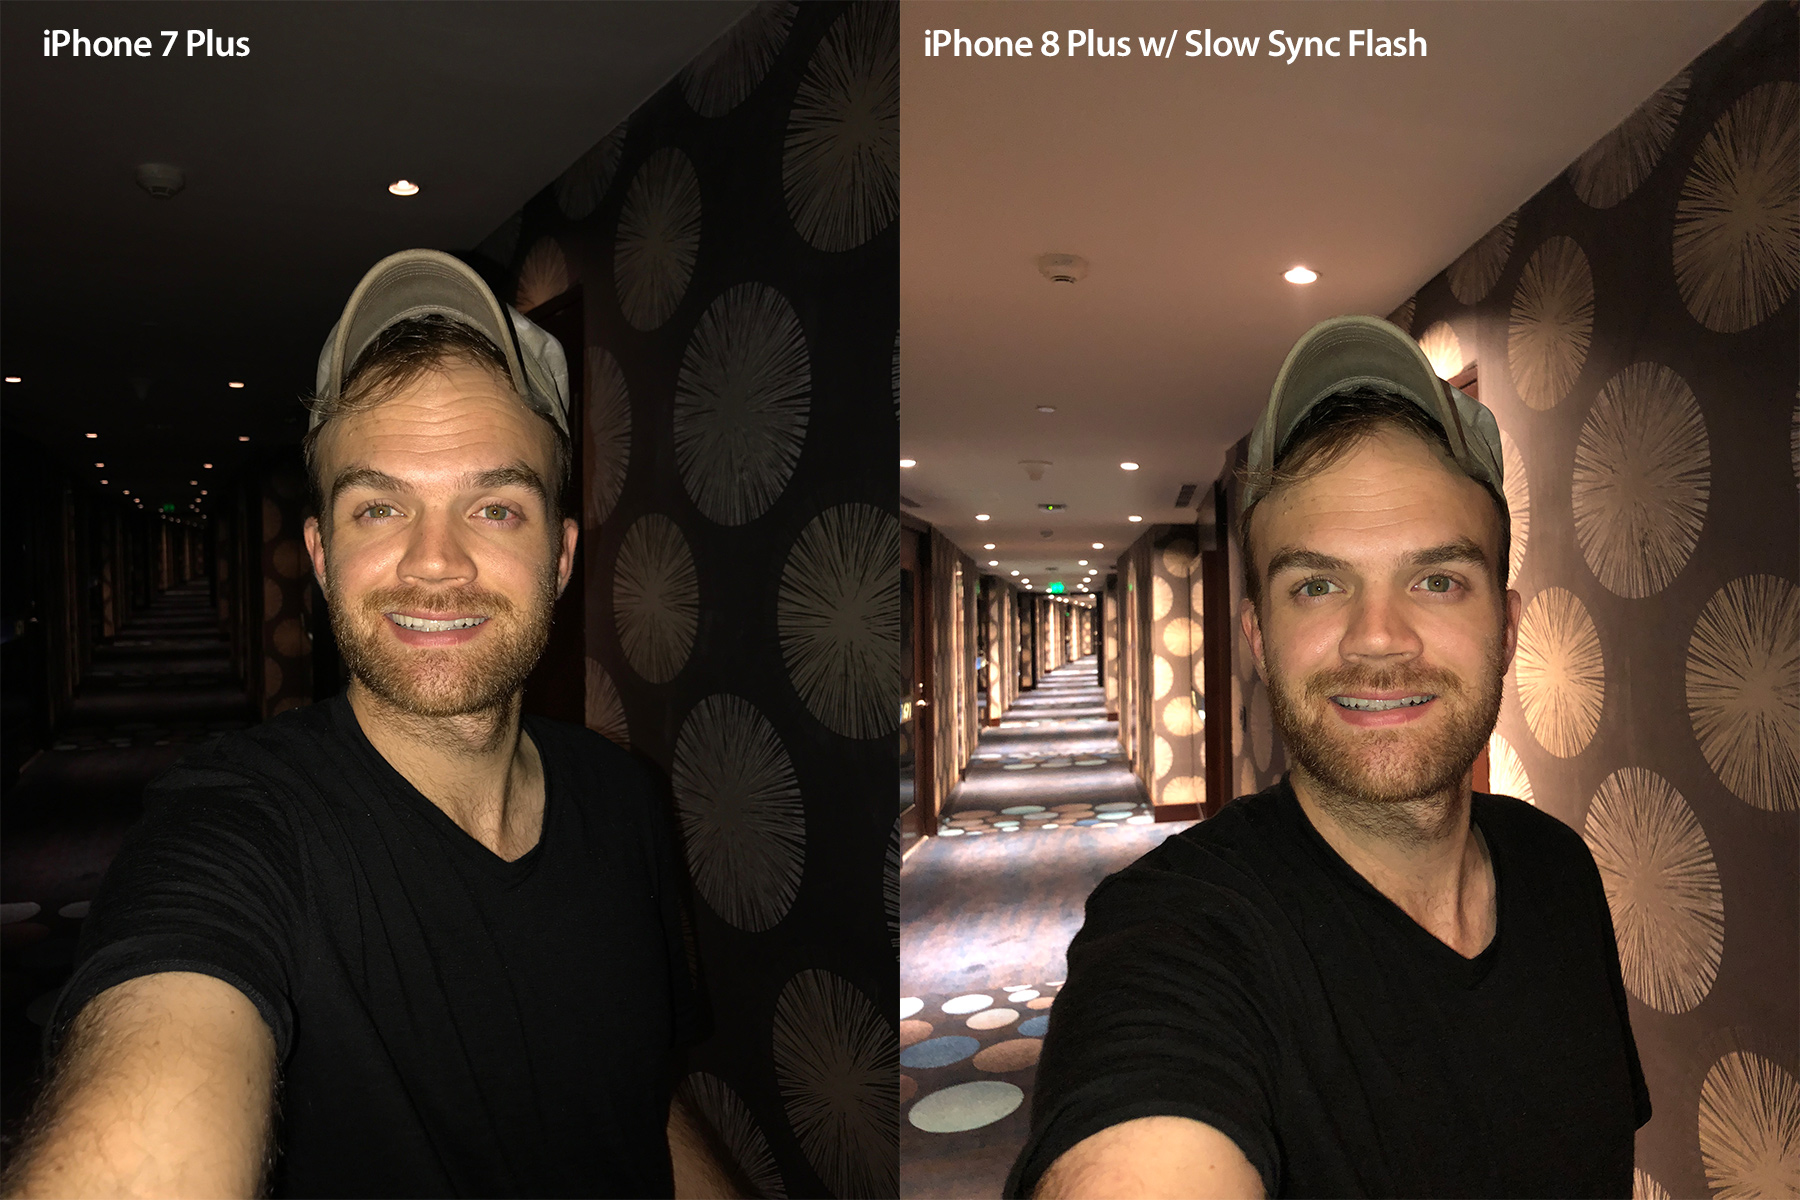 As you can see, the Slow Sync function lets a lot more ambient light in, giving the viewer a much stronger sense of place in the image. Note:These were shot with the rear camera, not the selfie camera.